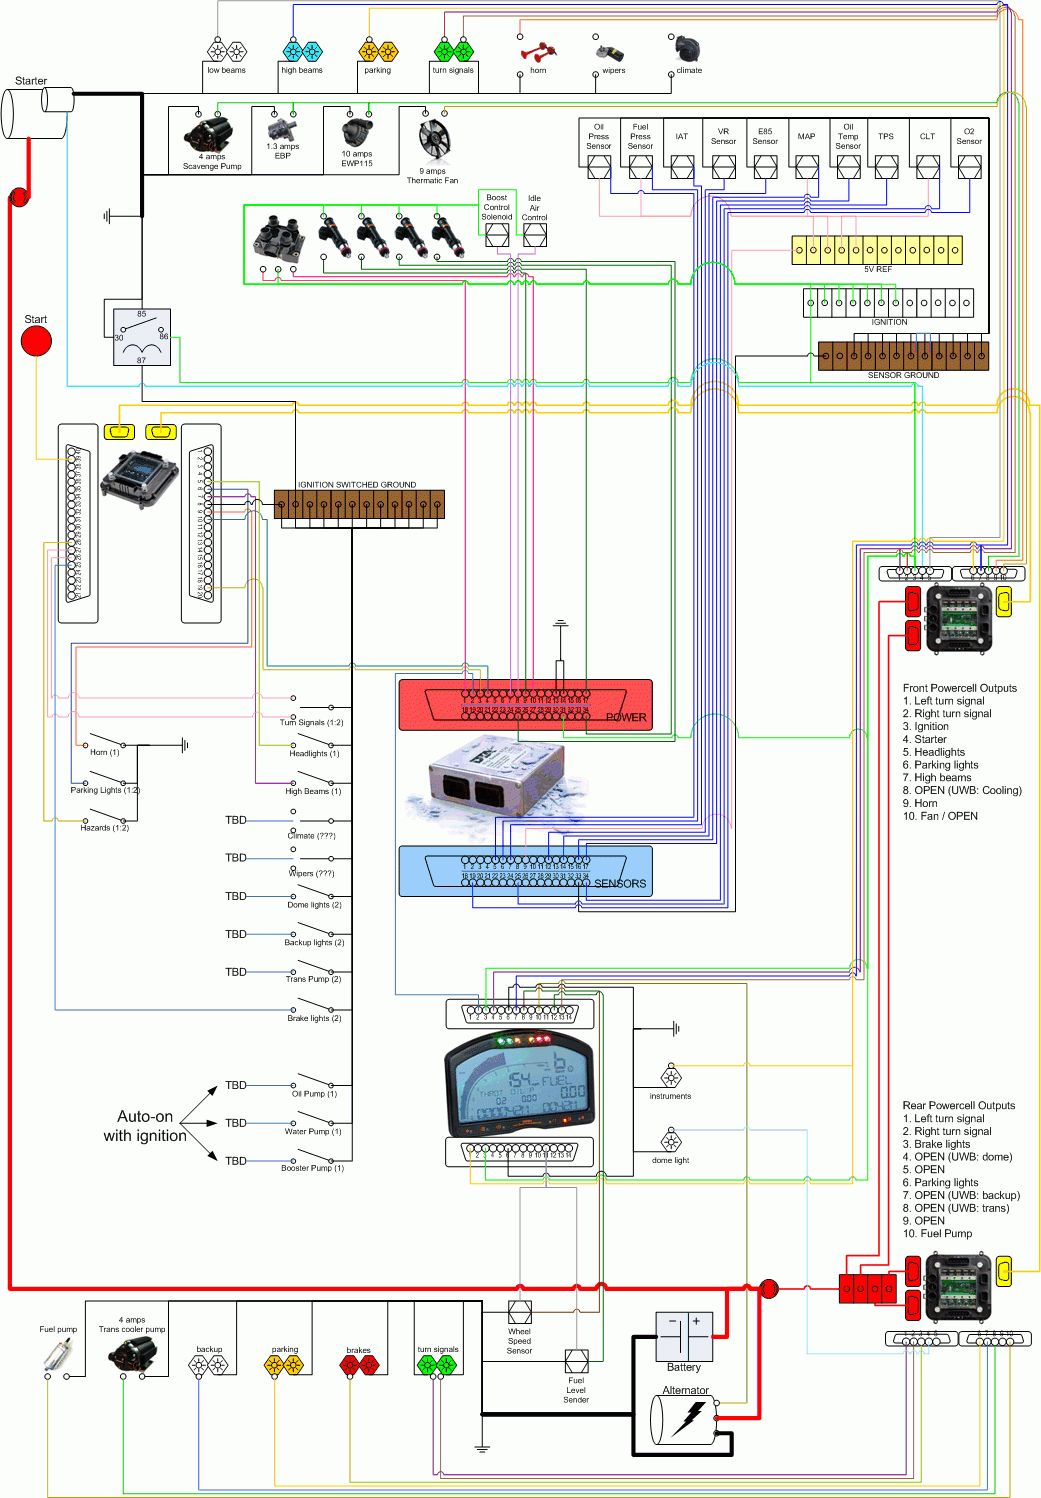 hight resolution of race car wiring schematic wiring diagram pagedrag race car wiring systems wiring diagramrace car wiring schematic